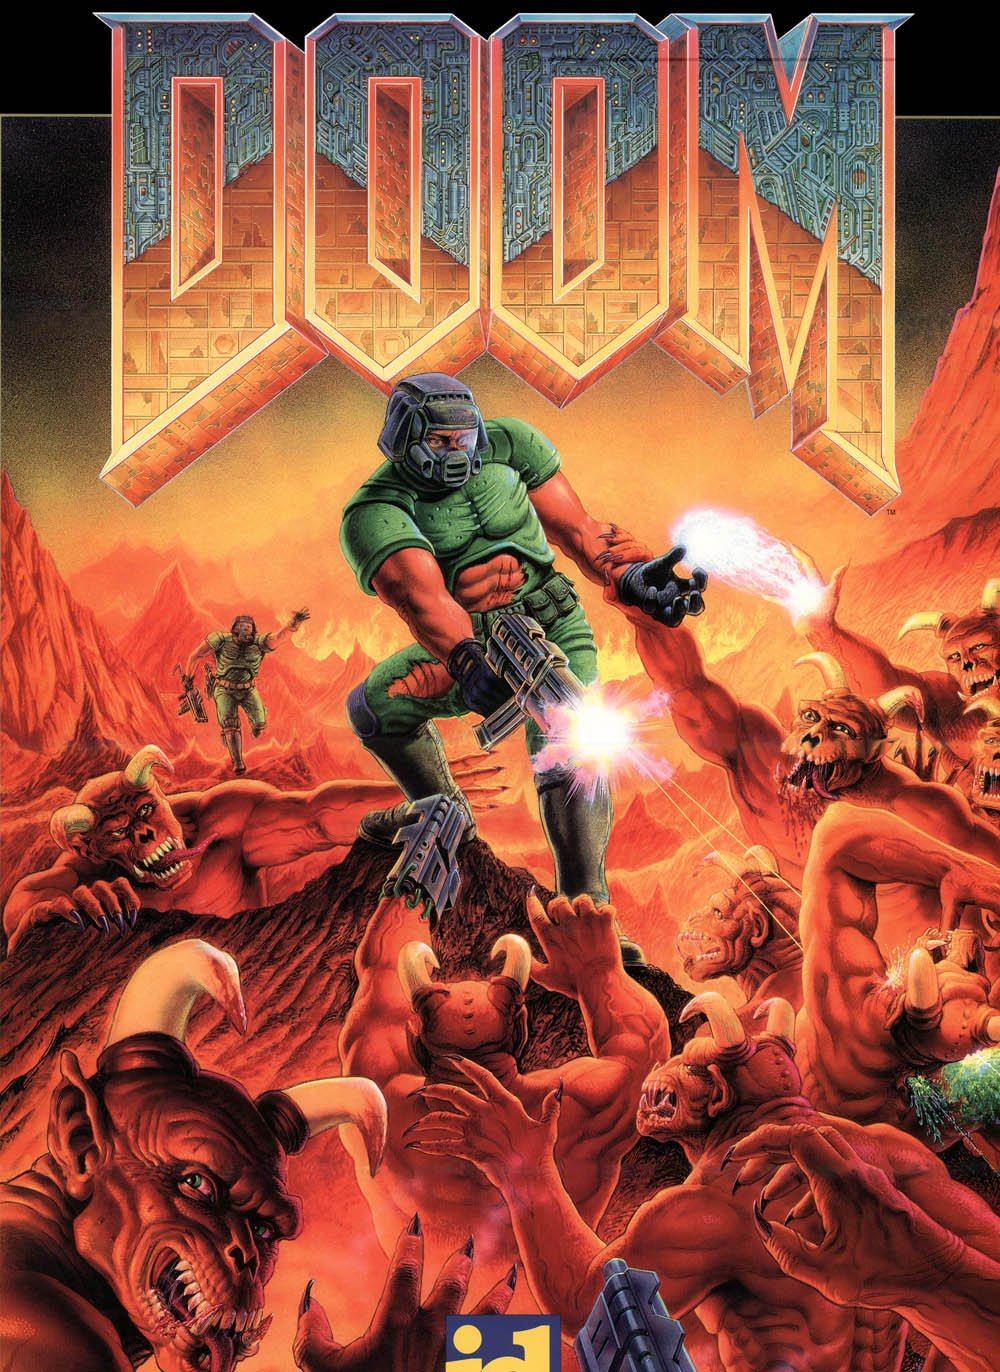 Original Doom Box Art Wiring Diagrams Rock Paper Scissors Lizard Spock Counted Cross By Robinsdesign Someone Made The Look Like Its Righteous Rh News Avclub Com